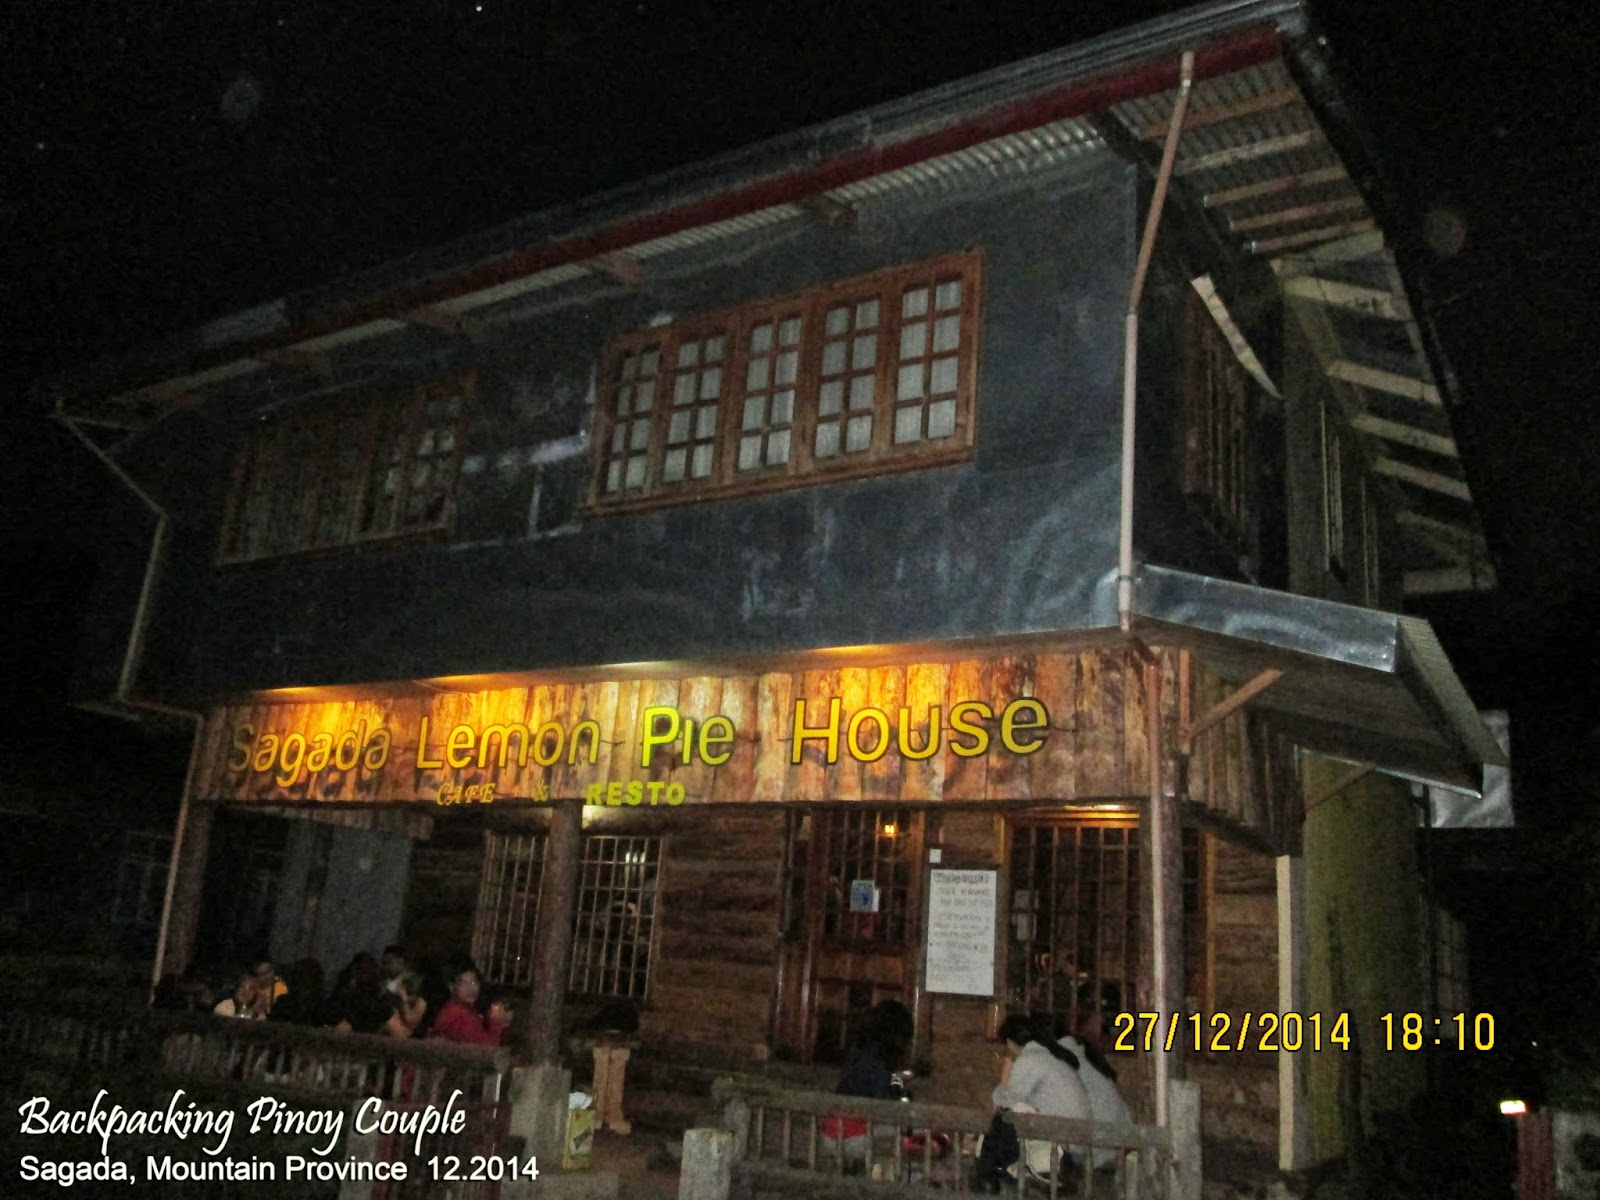 Backpacking Pinoy Couple, Sagada, Mountain Province, Philippines, Sagada Lemon Pie House